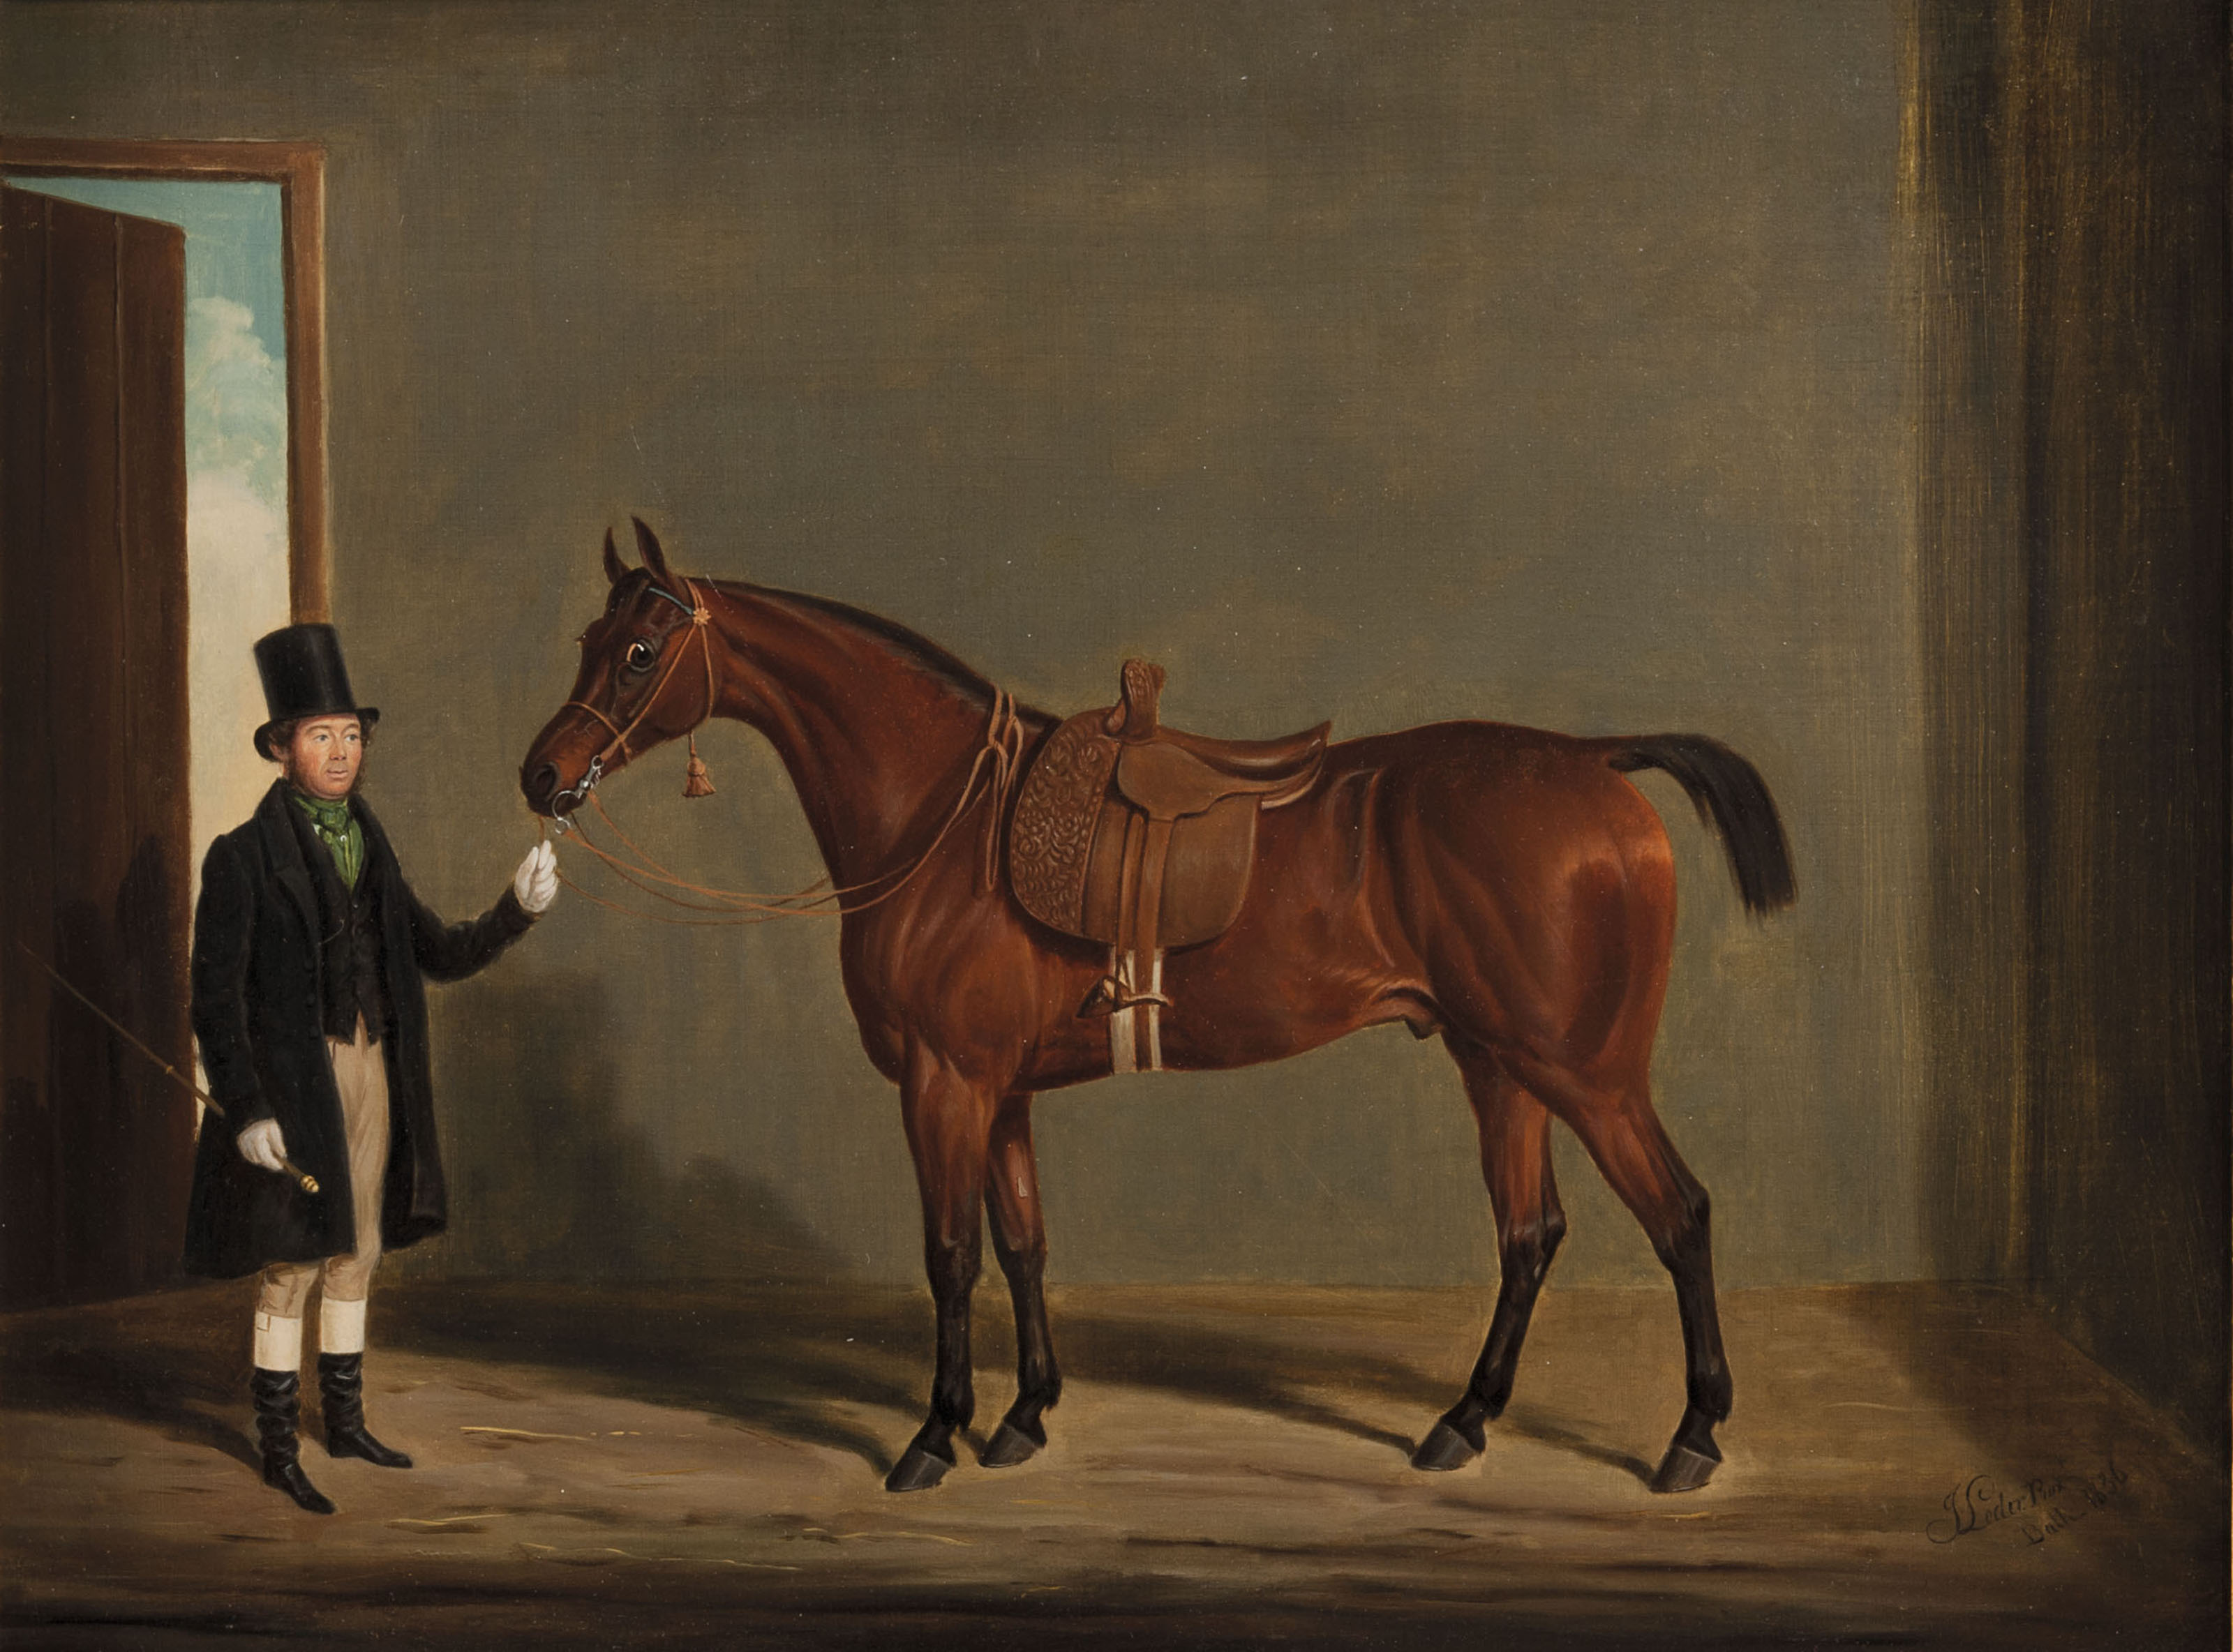 A chesnut stallion in a stable and his owner